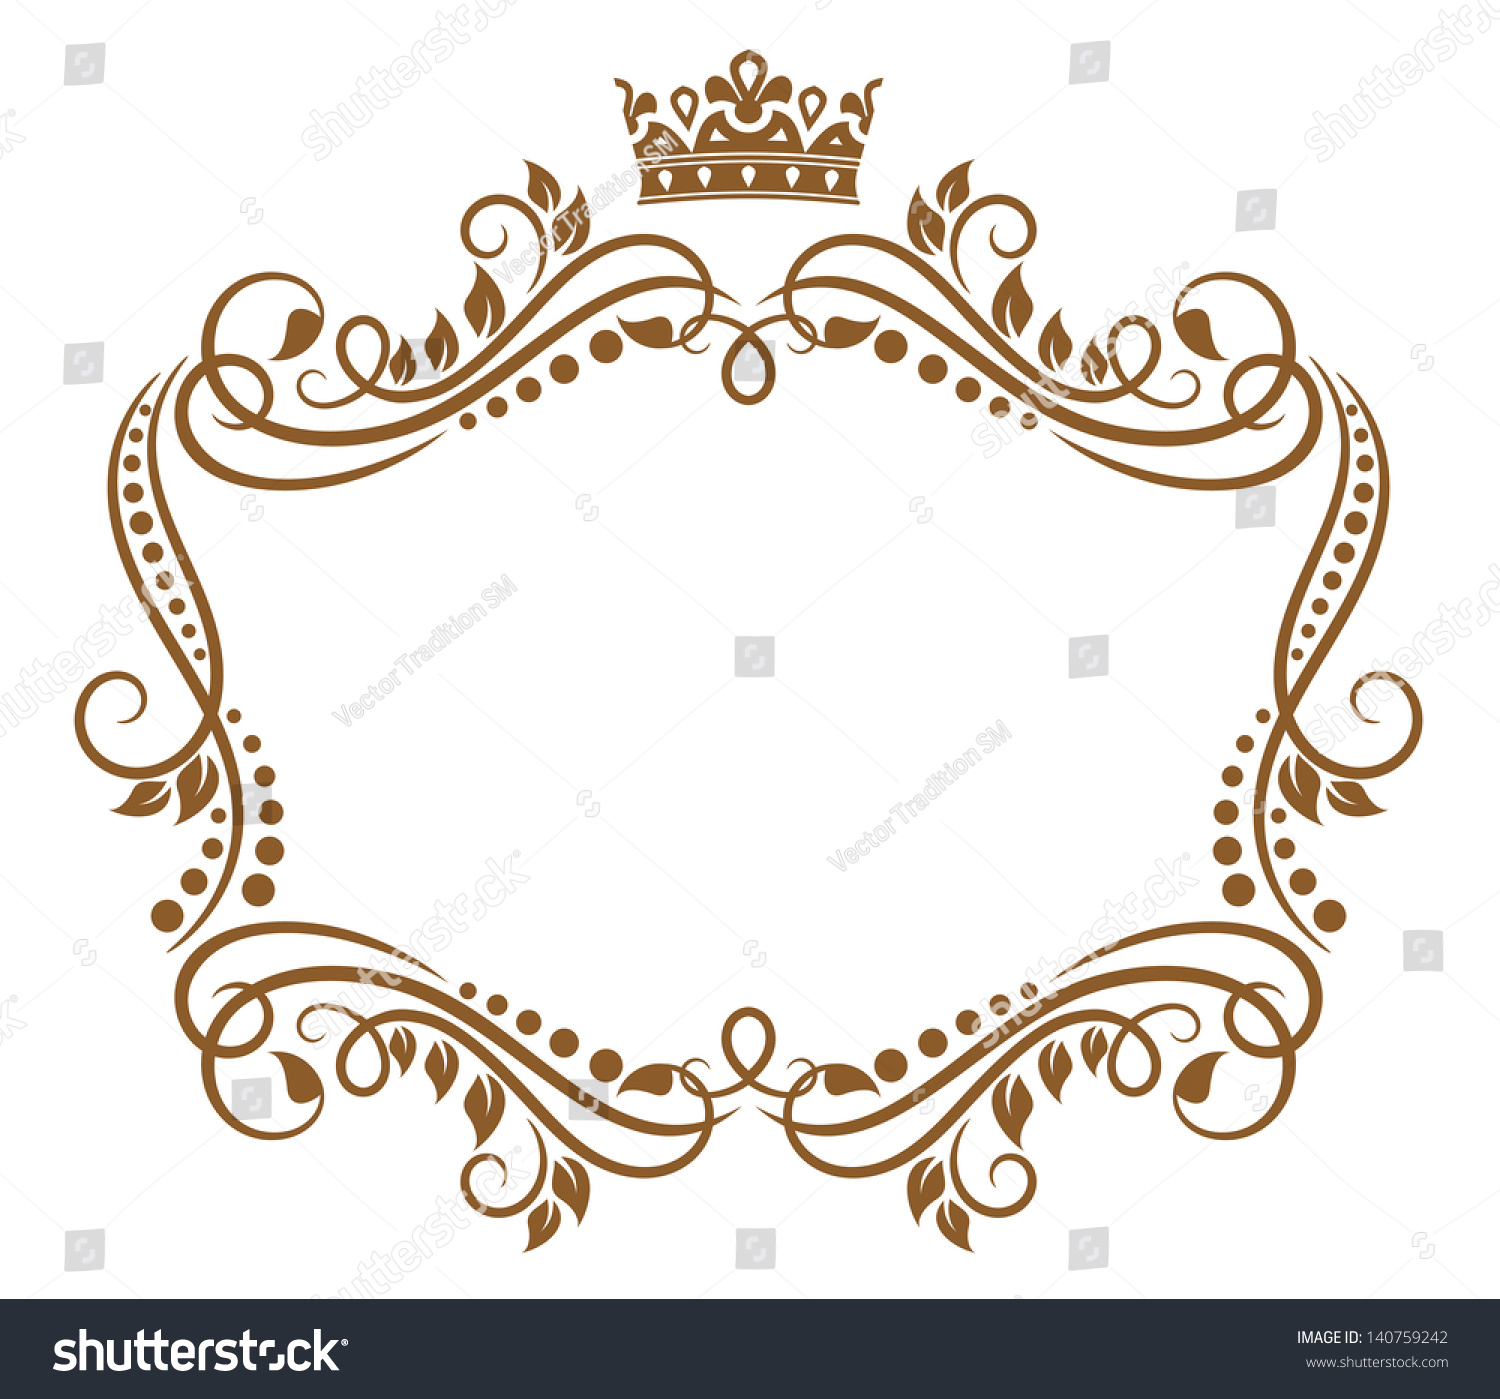 retro frame with royal crown and flowers for wedding or heraldry design jpeg bitmap